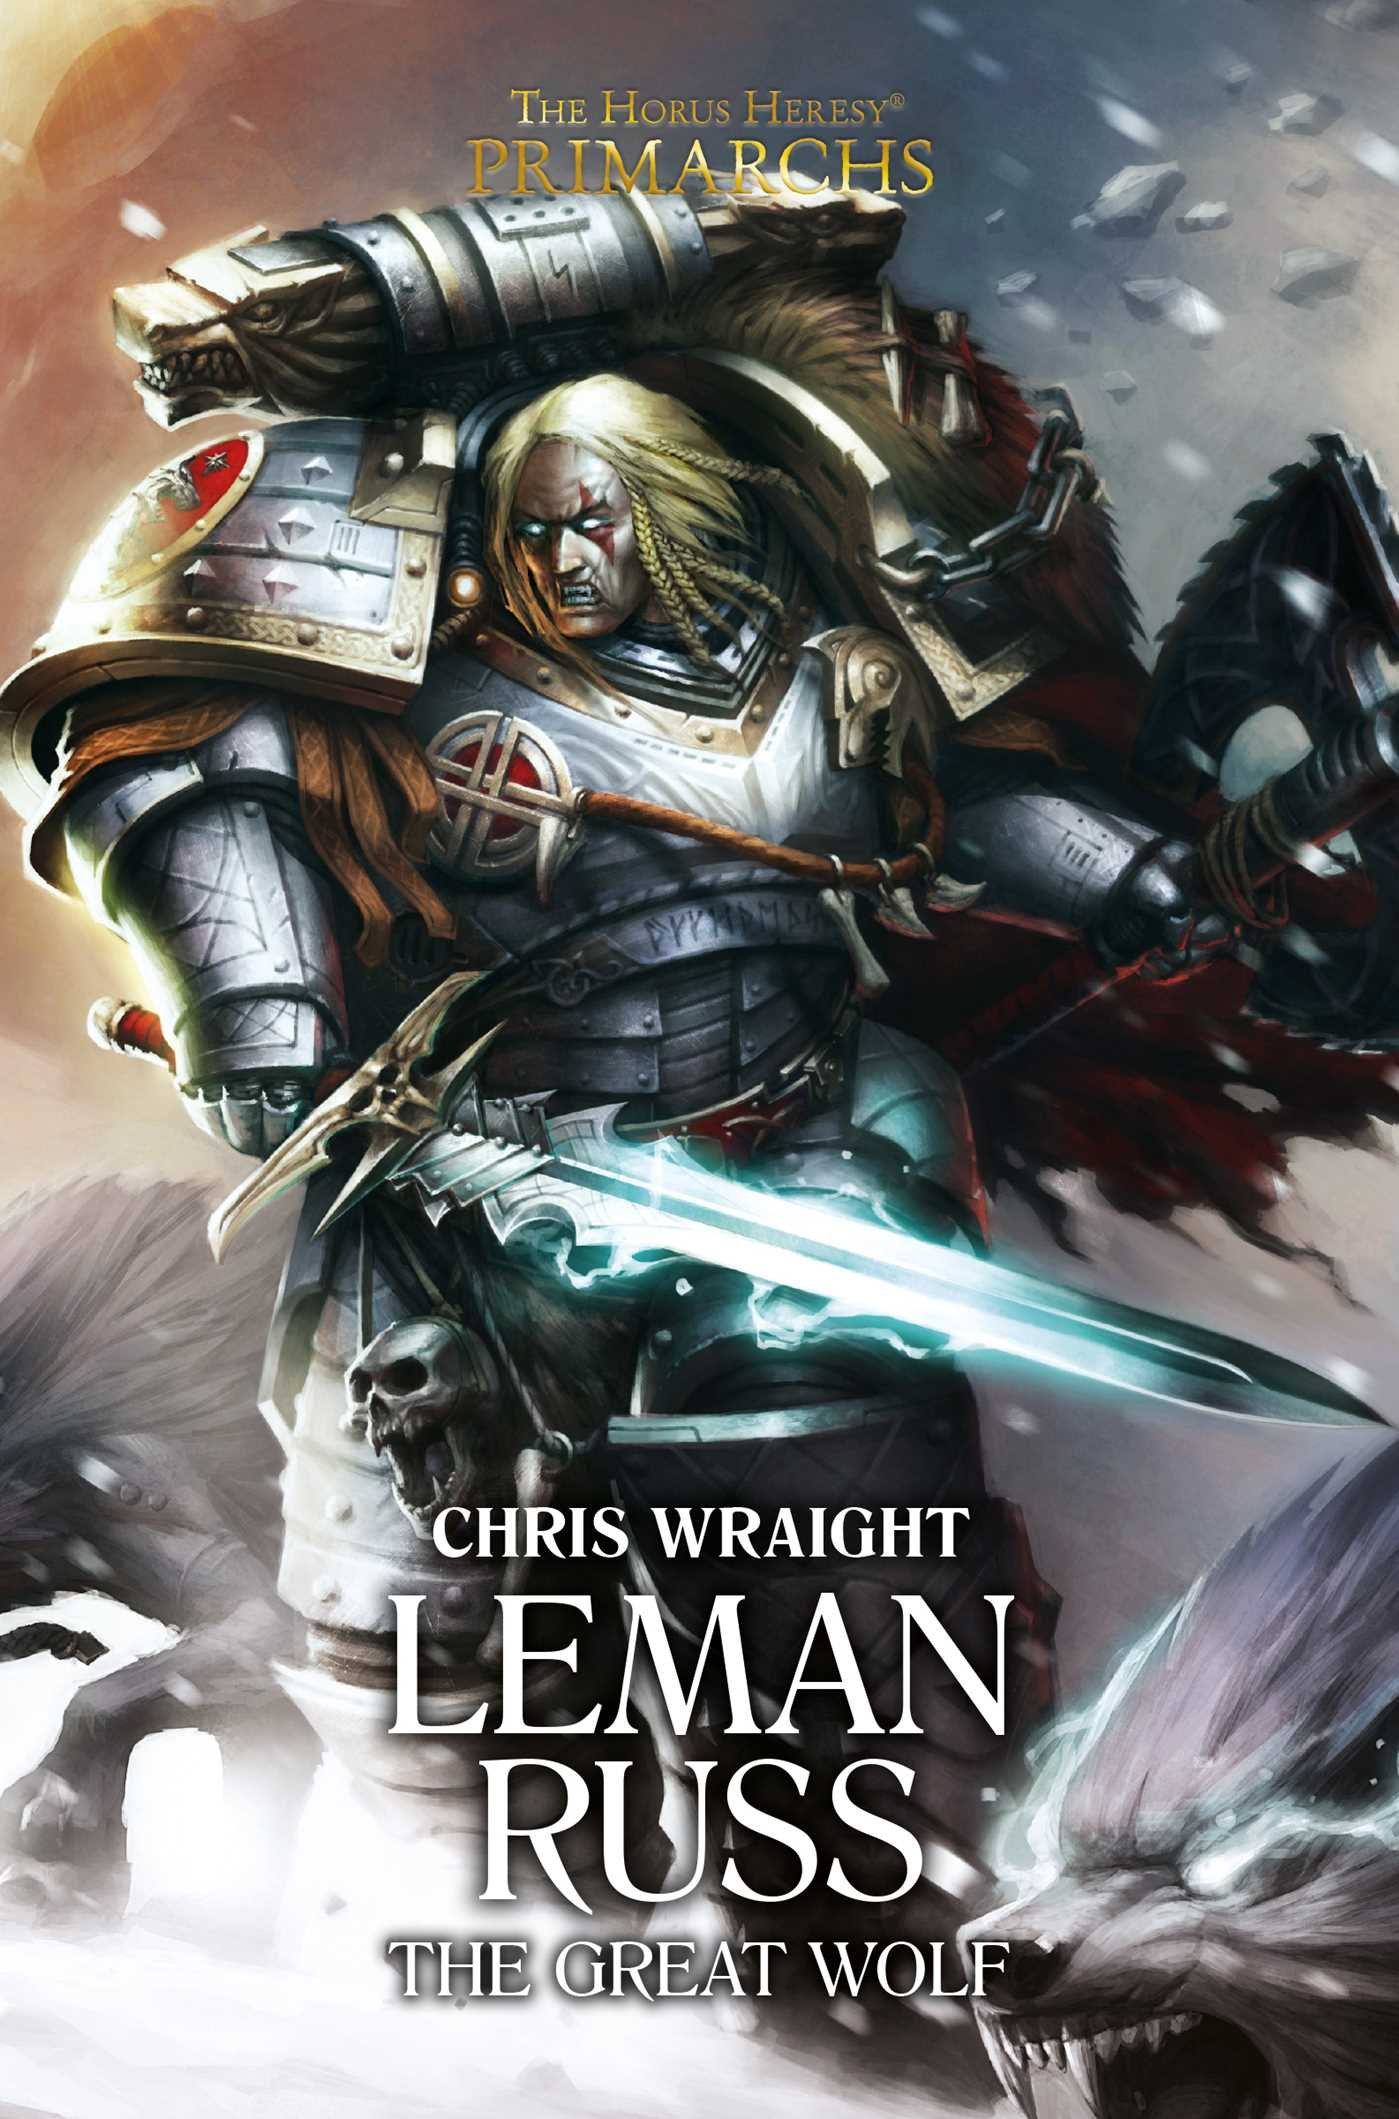 Download Leman Russ: The Great Wolf (The Horus Heresy: Primarchs) PDF